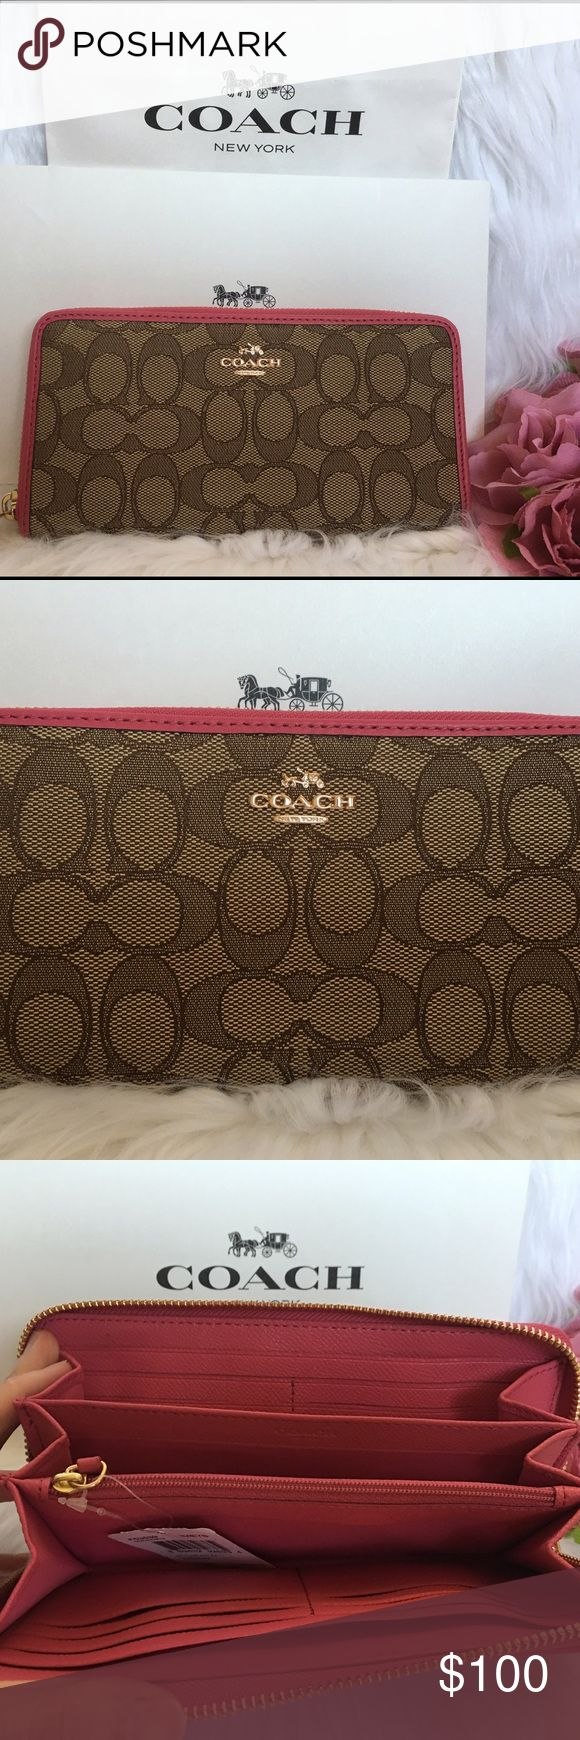 Brand new COACH Wallet Brand new with tag Coach Bags Wallets